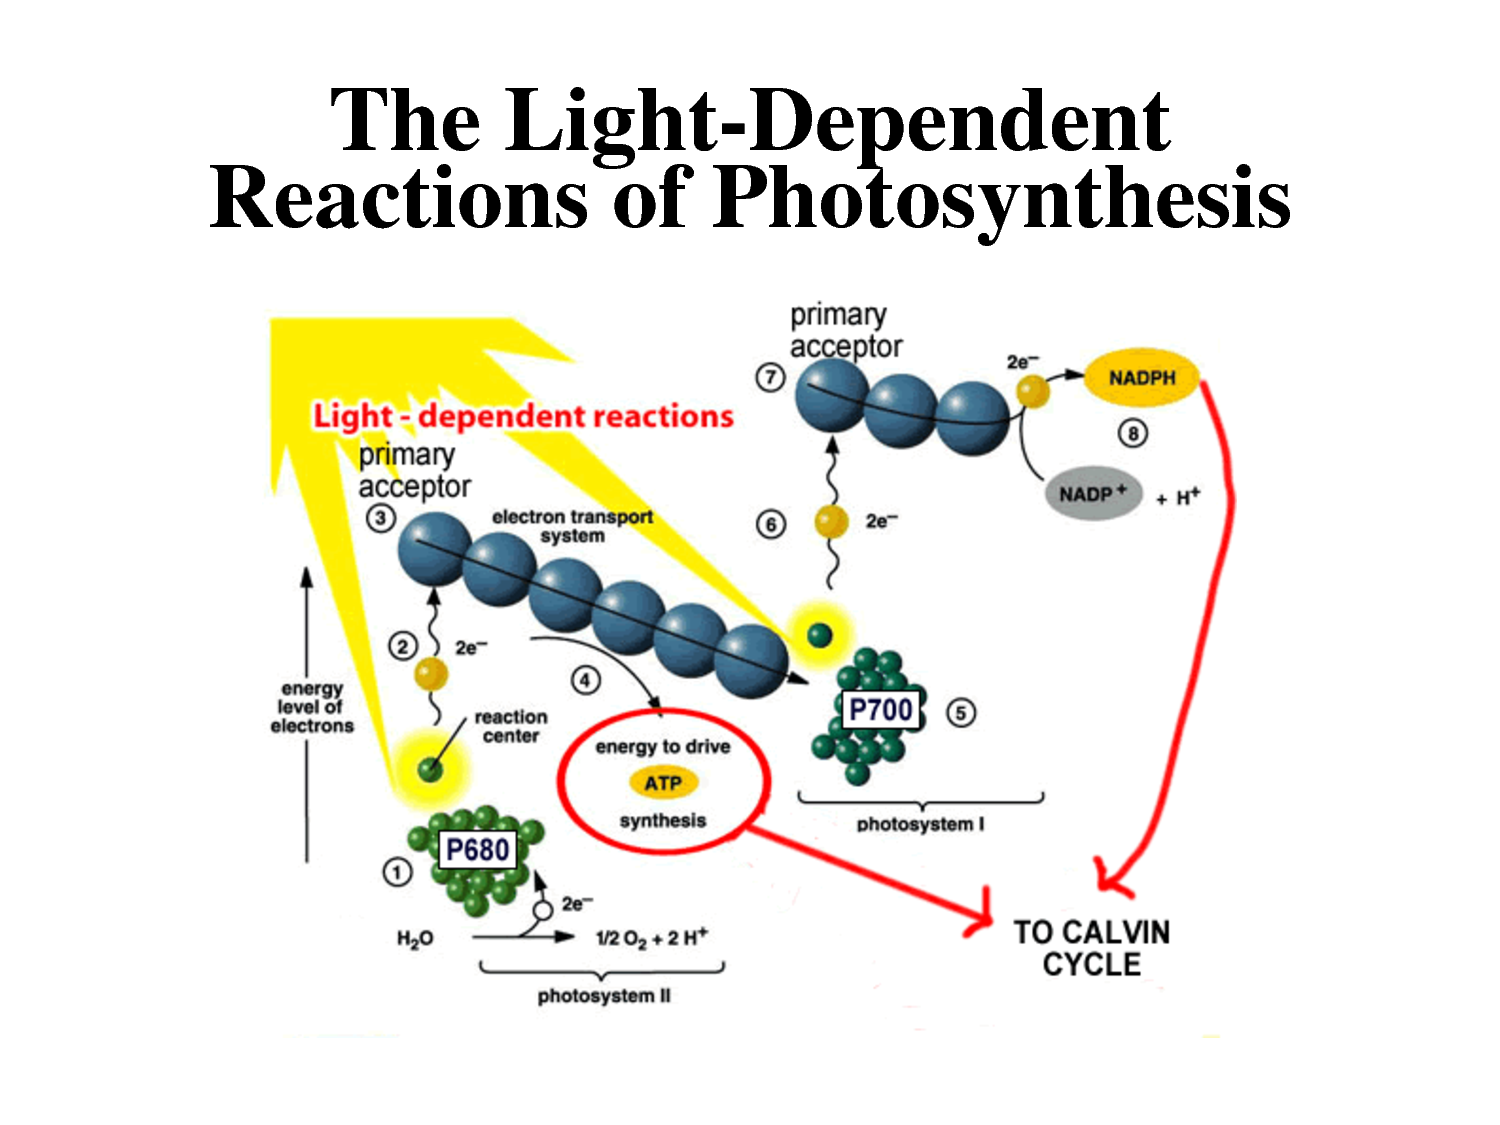 the process of photosynthesis within a carbon cycle Photosynthesis, cellular respiration and the carbon cycle plants convert the carbon in atmospheric carbon dioxide into carbon-containing organic compounds, such as sugars, fats, and proteins plants take in carbon dioxide through microscopic openings in their leaves, called stomata.